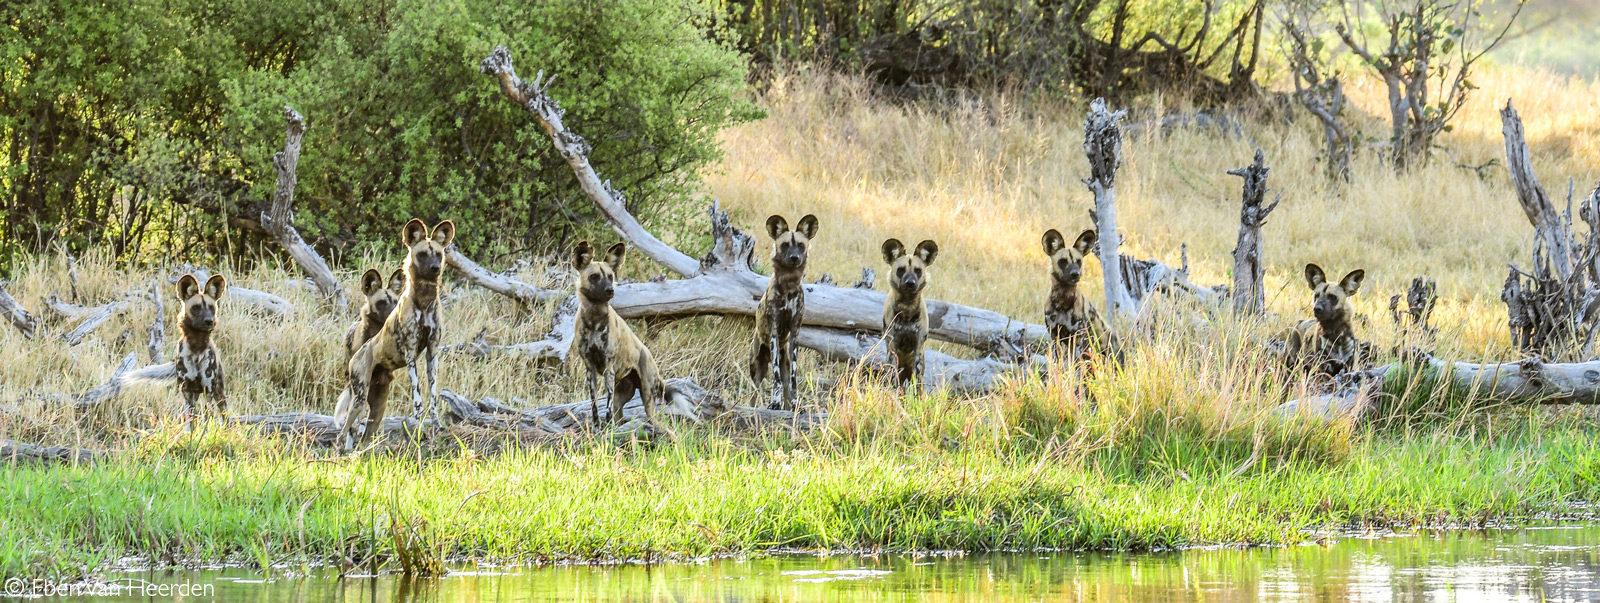 A pack of painted wolves (African wild dogs) watch a herd of impala on the other side of the Khwai River. Okavango Delta, Botswana © Eben Van Heerden